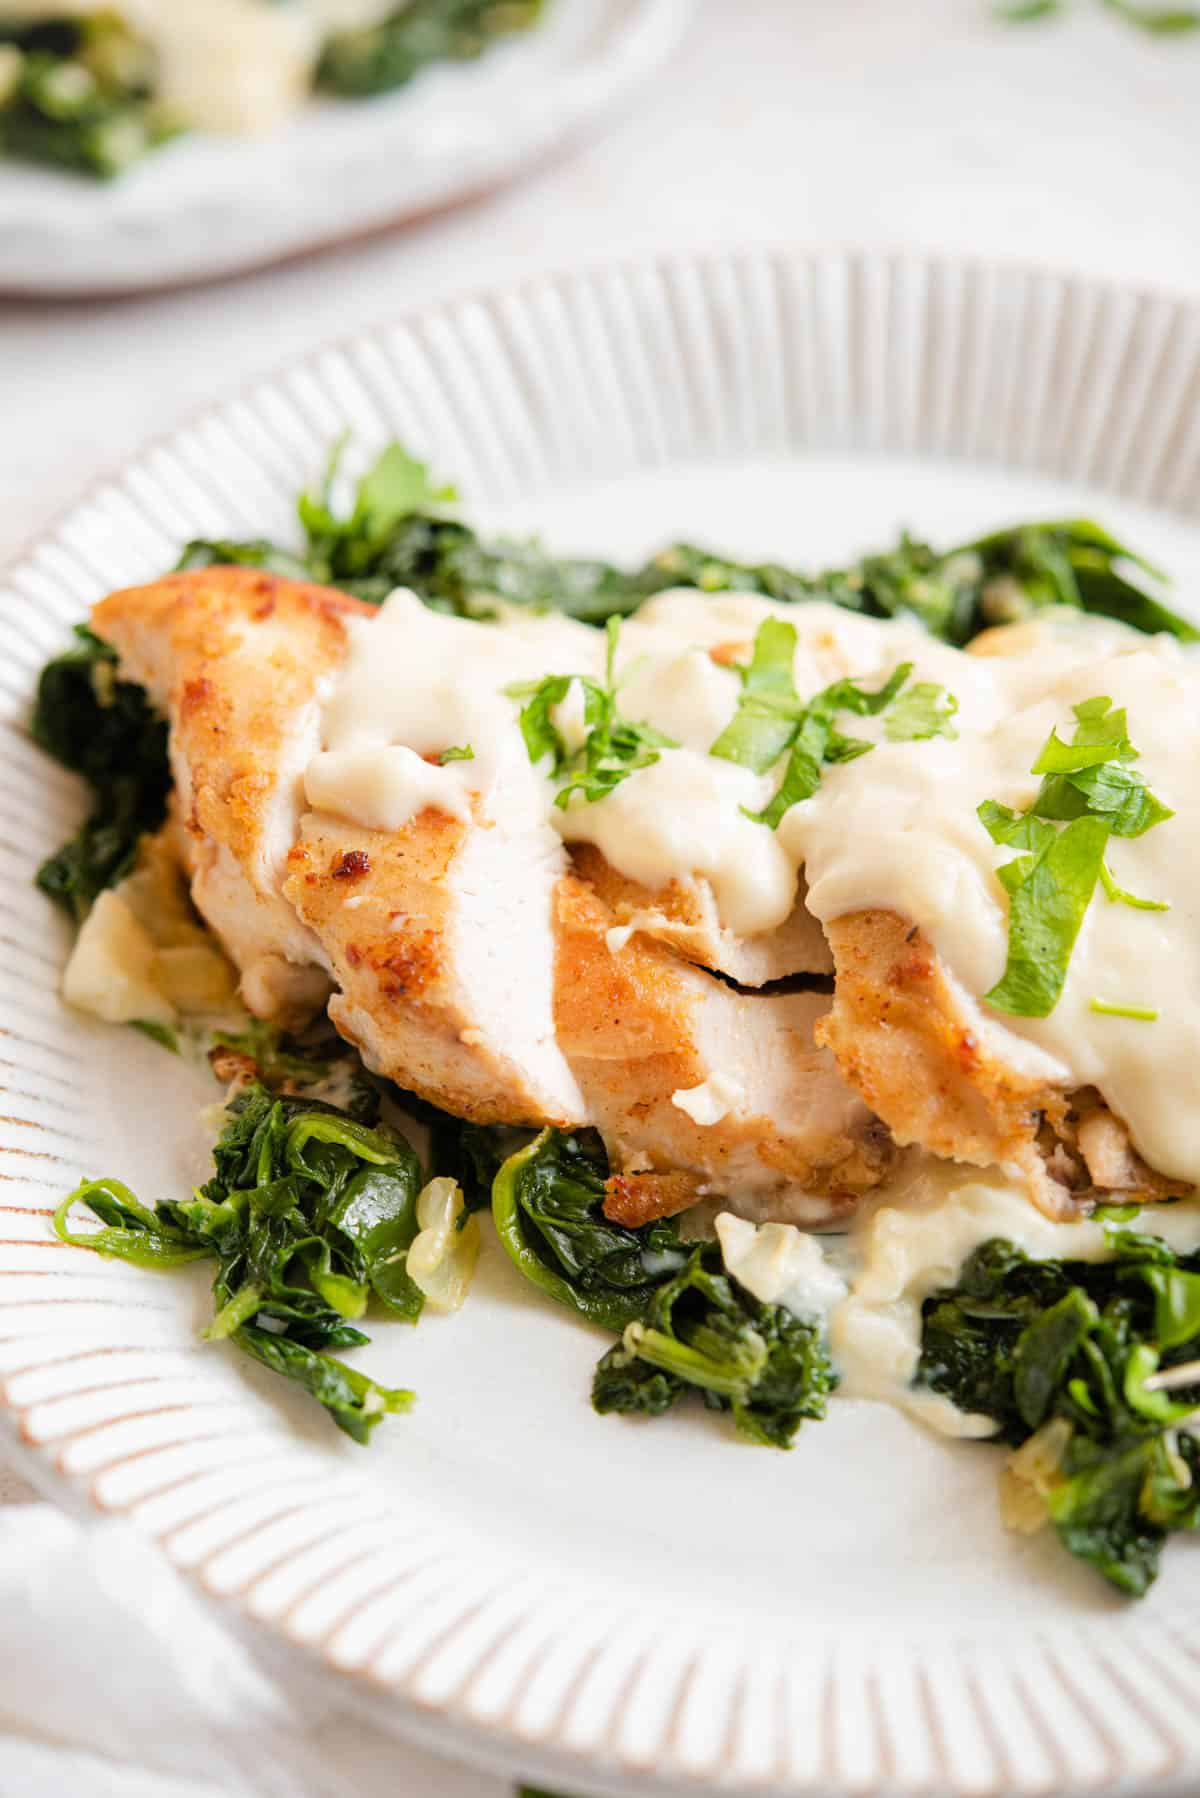 A close up of chicken cut into slices with spinach and cheese sauce on top